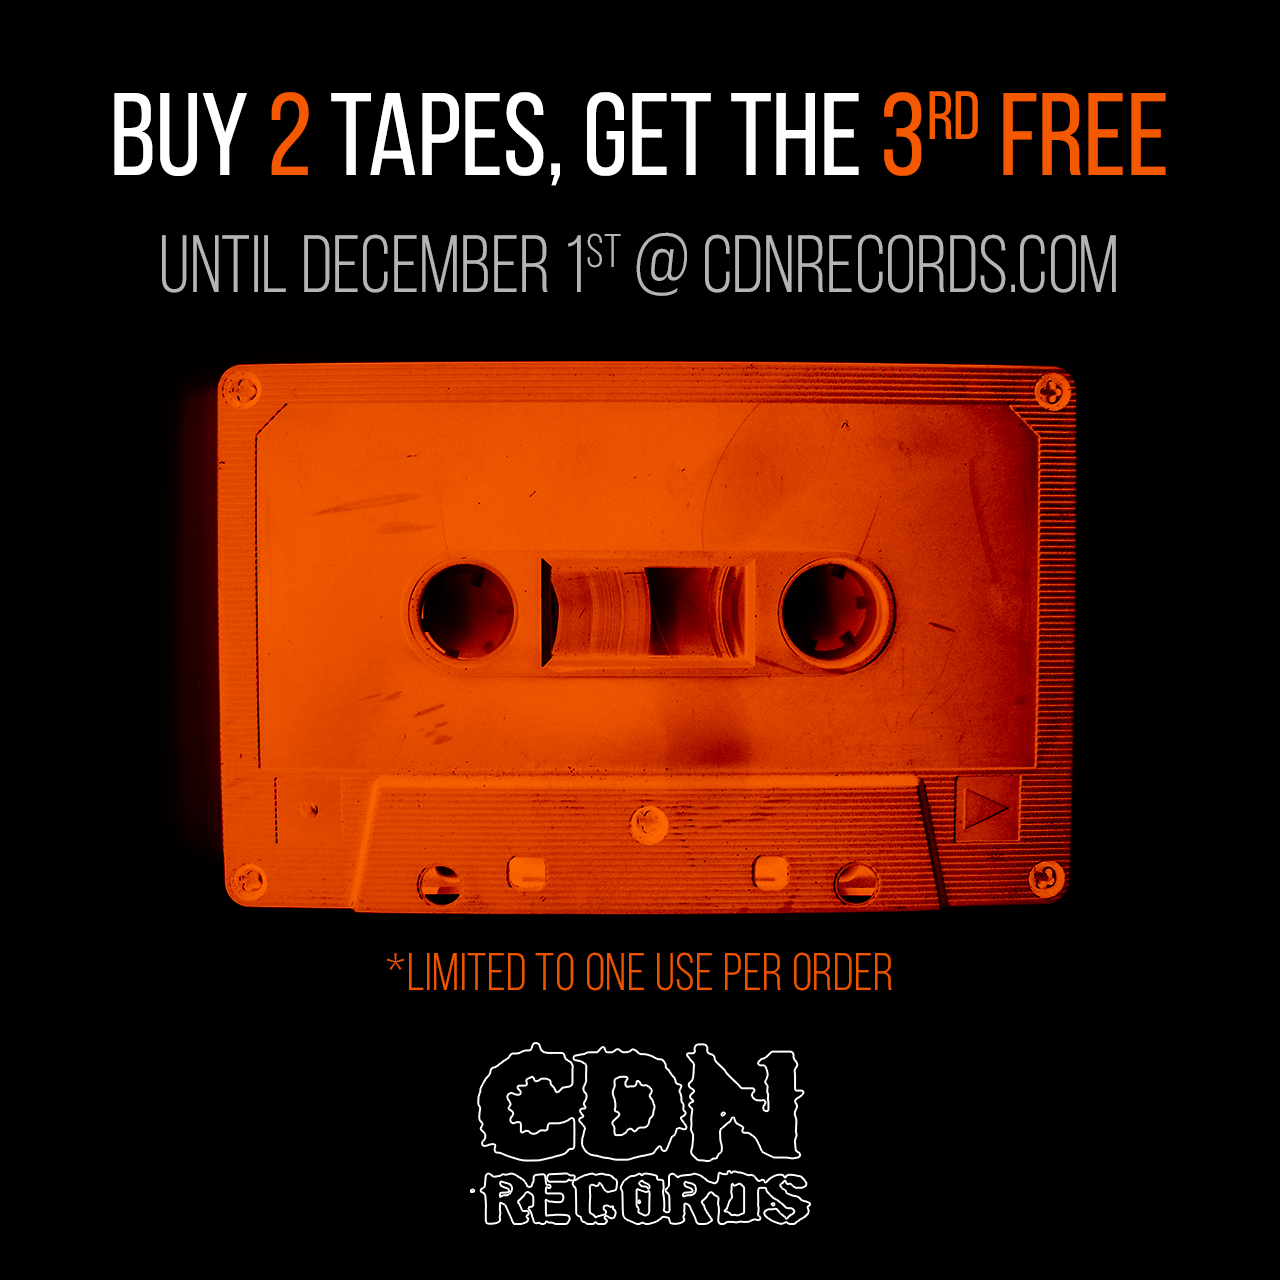 Promo graphic for November special on cassettes